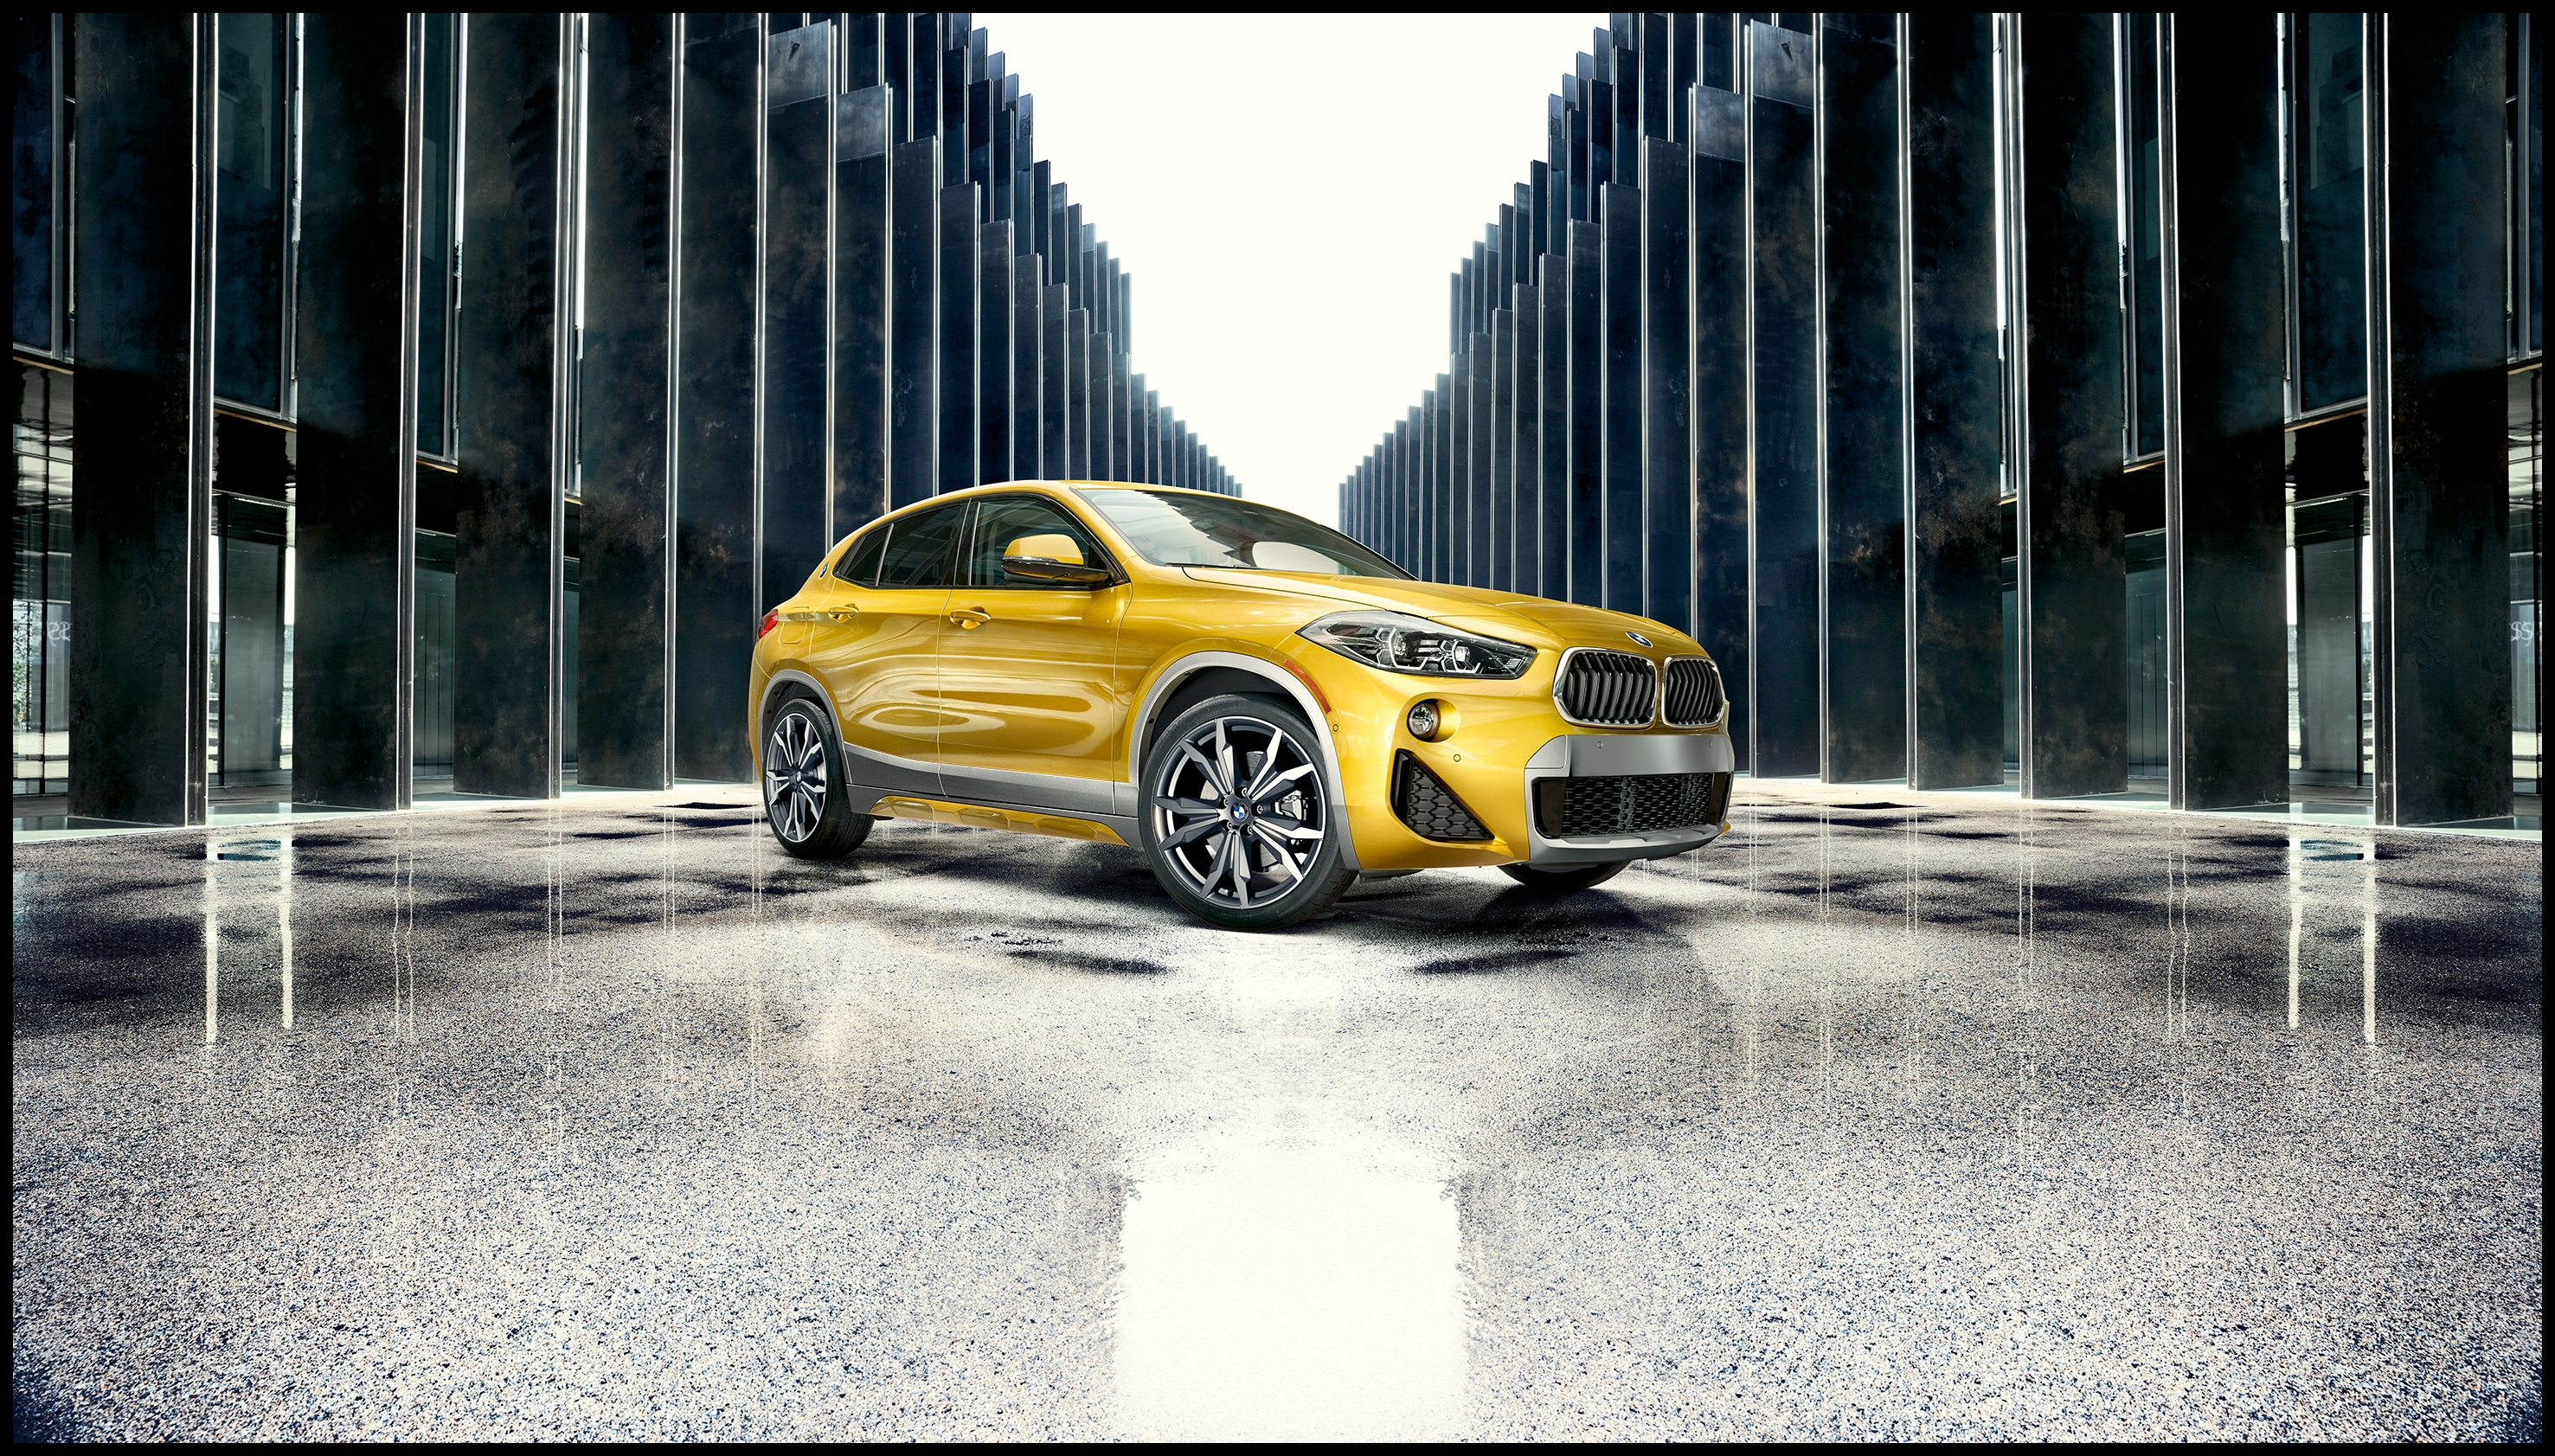 Find a used BMW model at your local Hoffman Estates IL BMW dealership